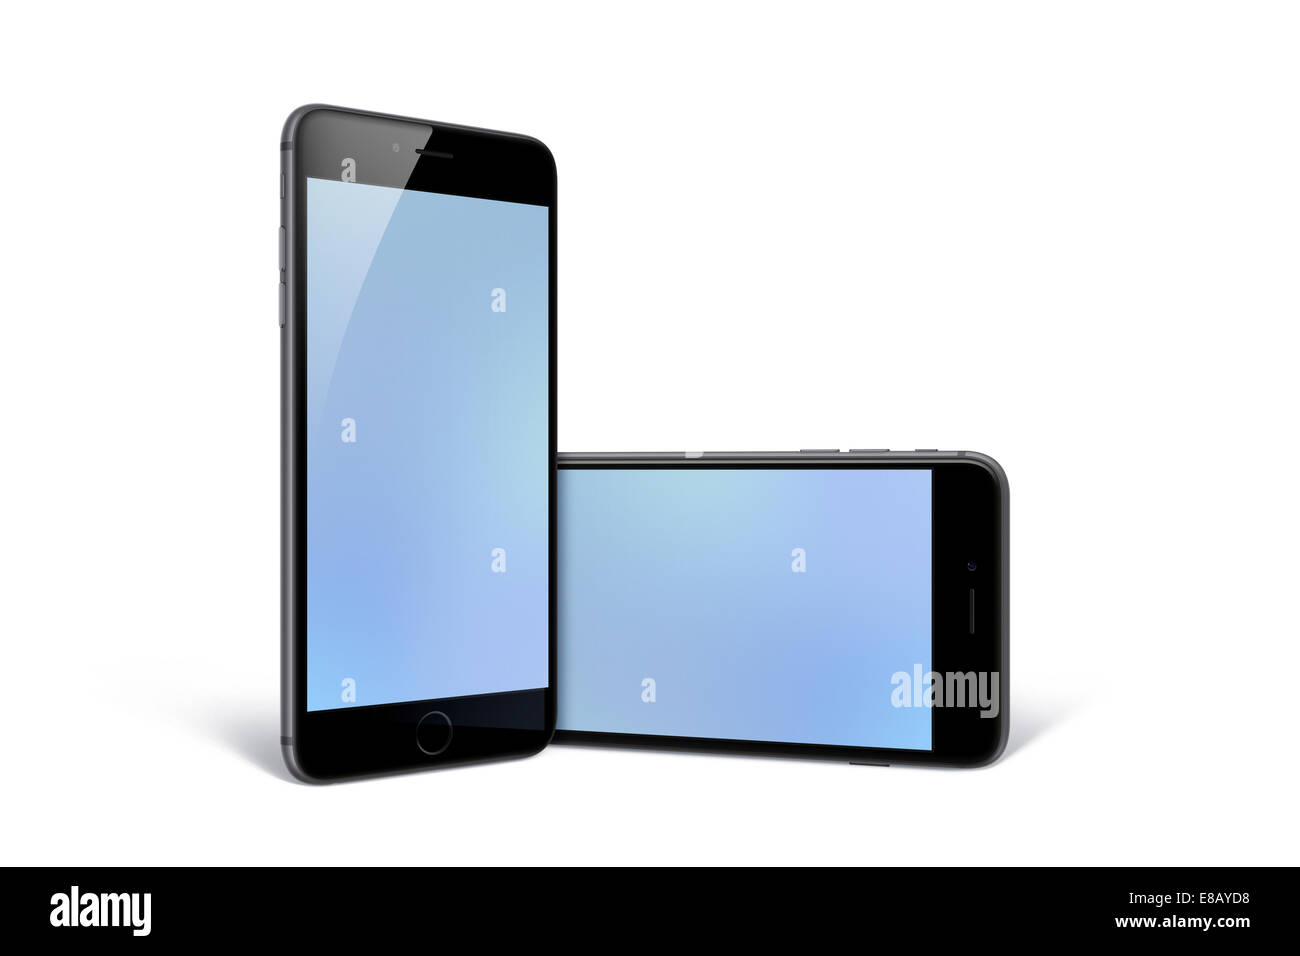 Digitally generated image of cell phones, iphone 6 space gray. - Stock Image